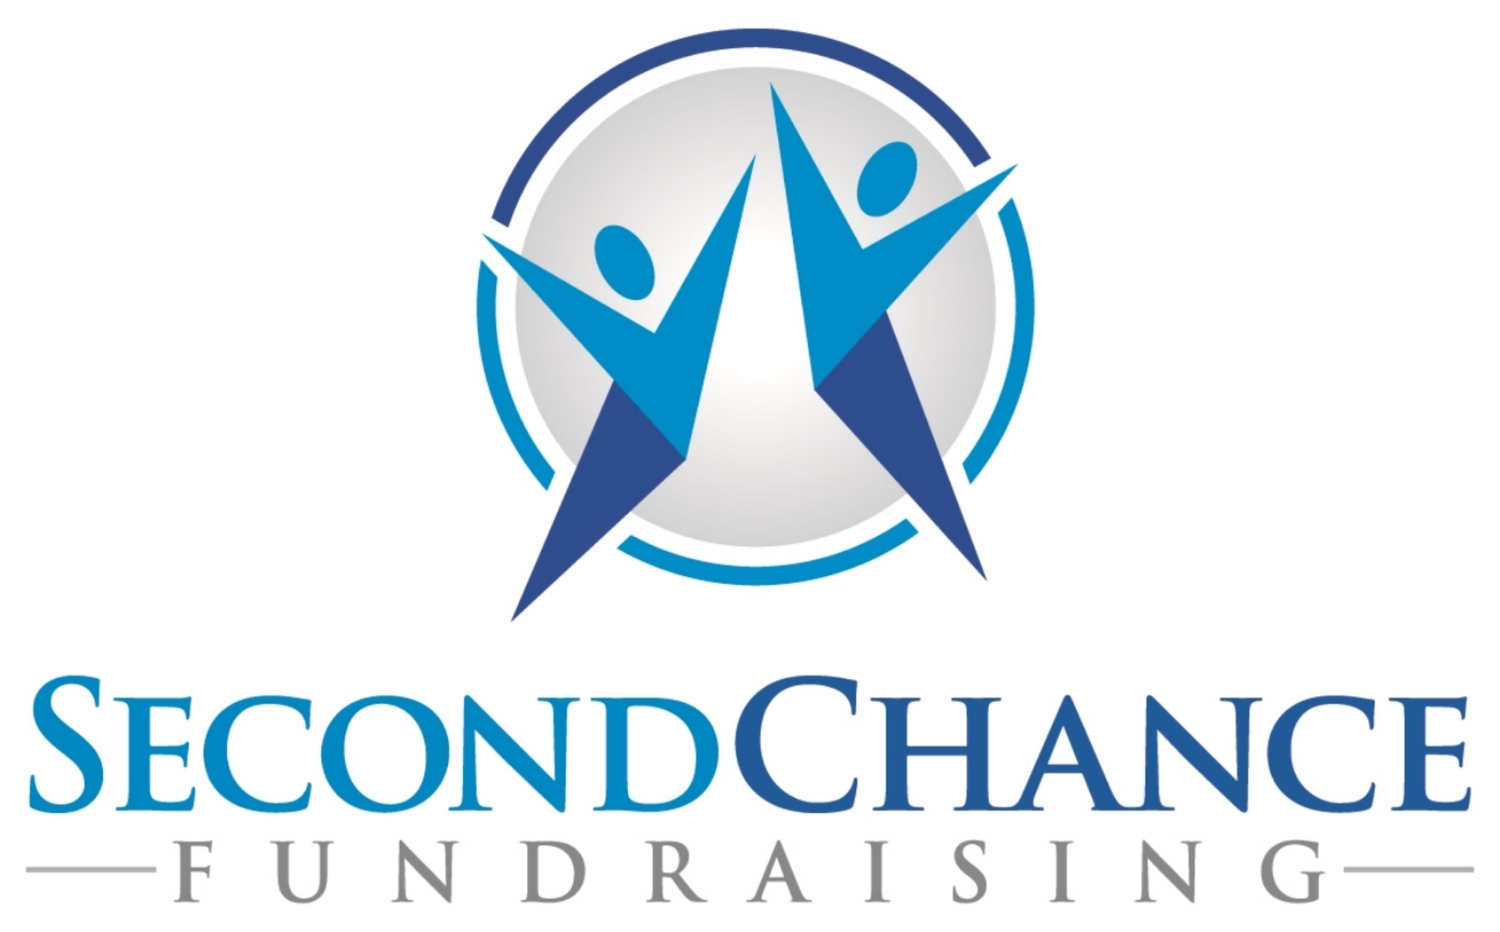 Second Chance Fundraising